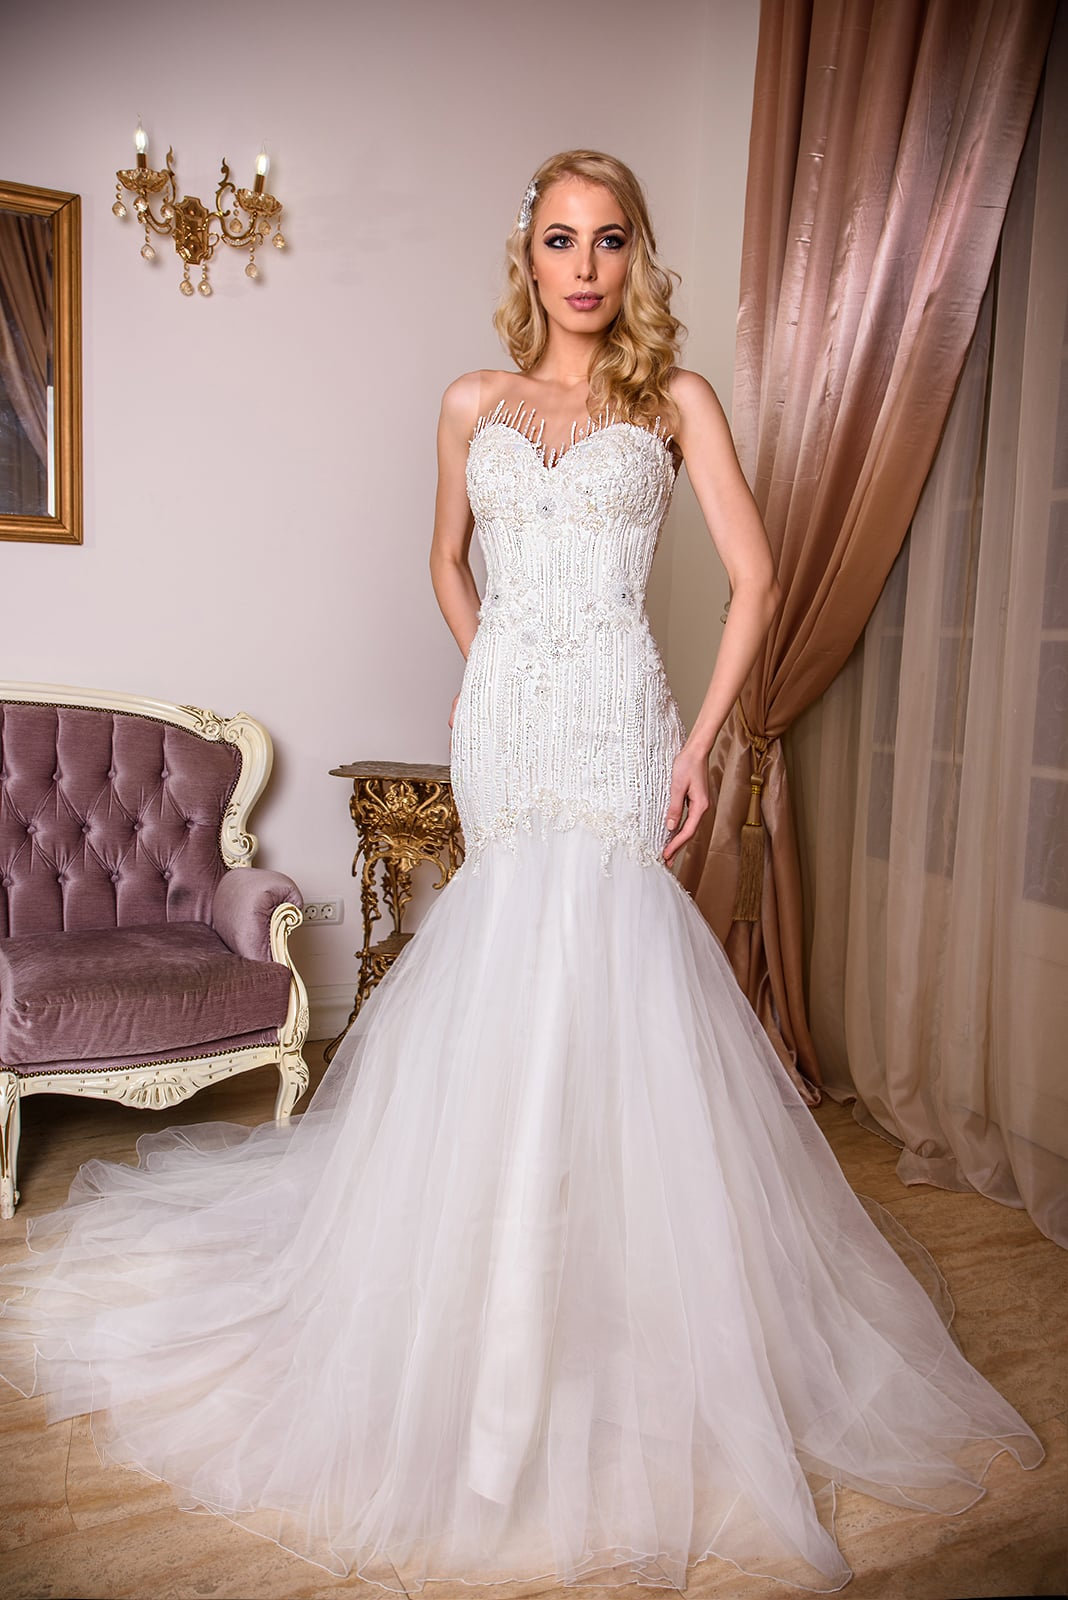 Nevada Model - Colectia Baroque - Adora Sposa